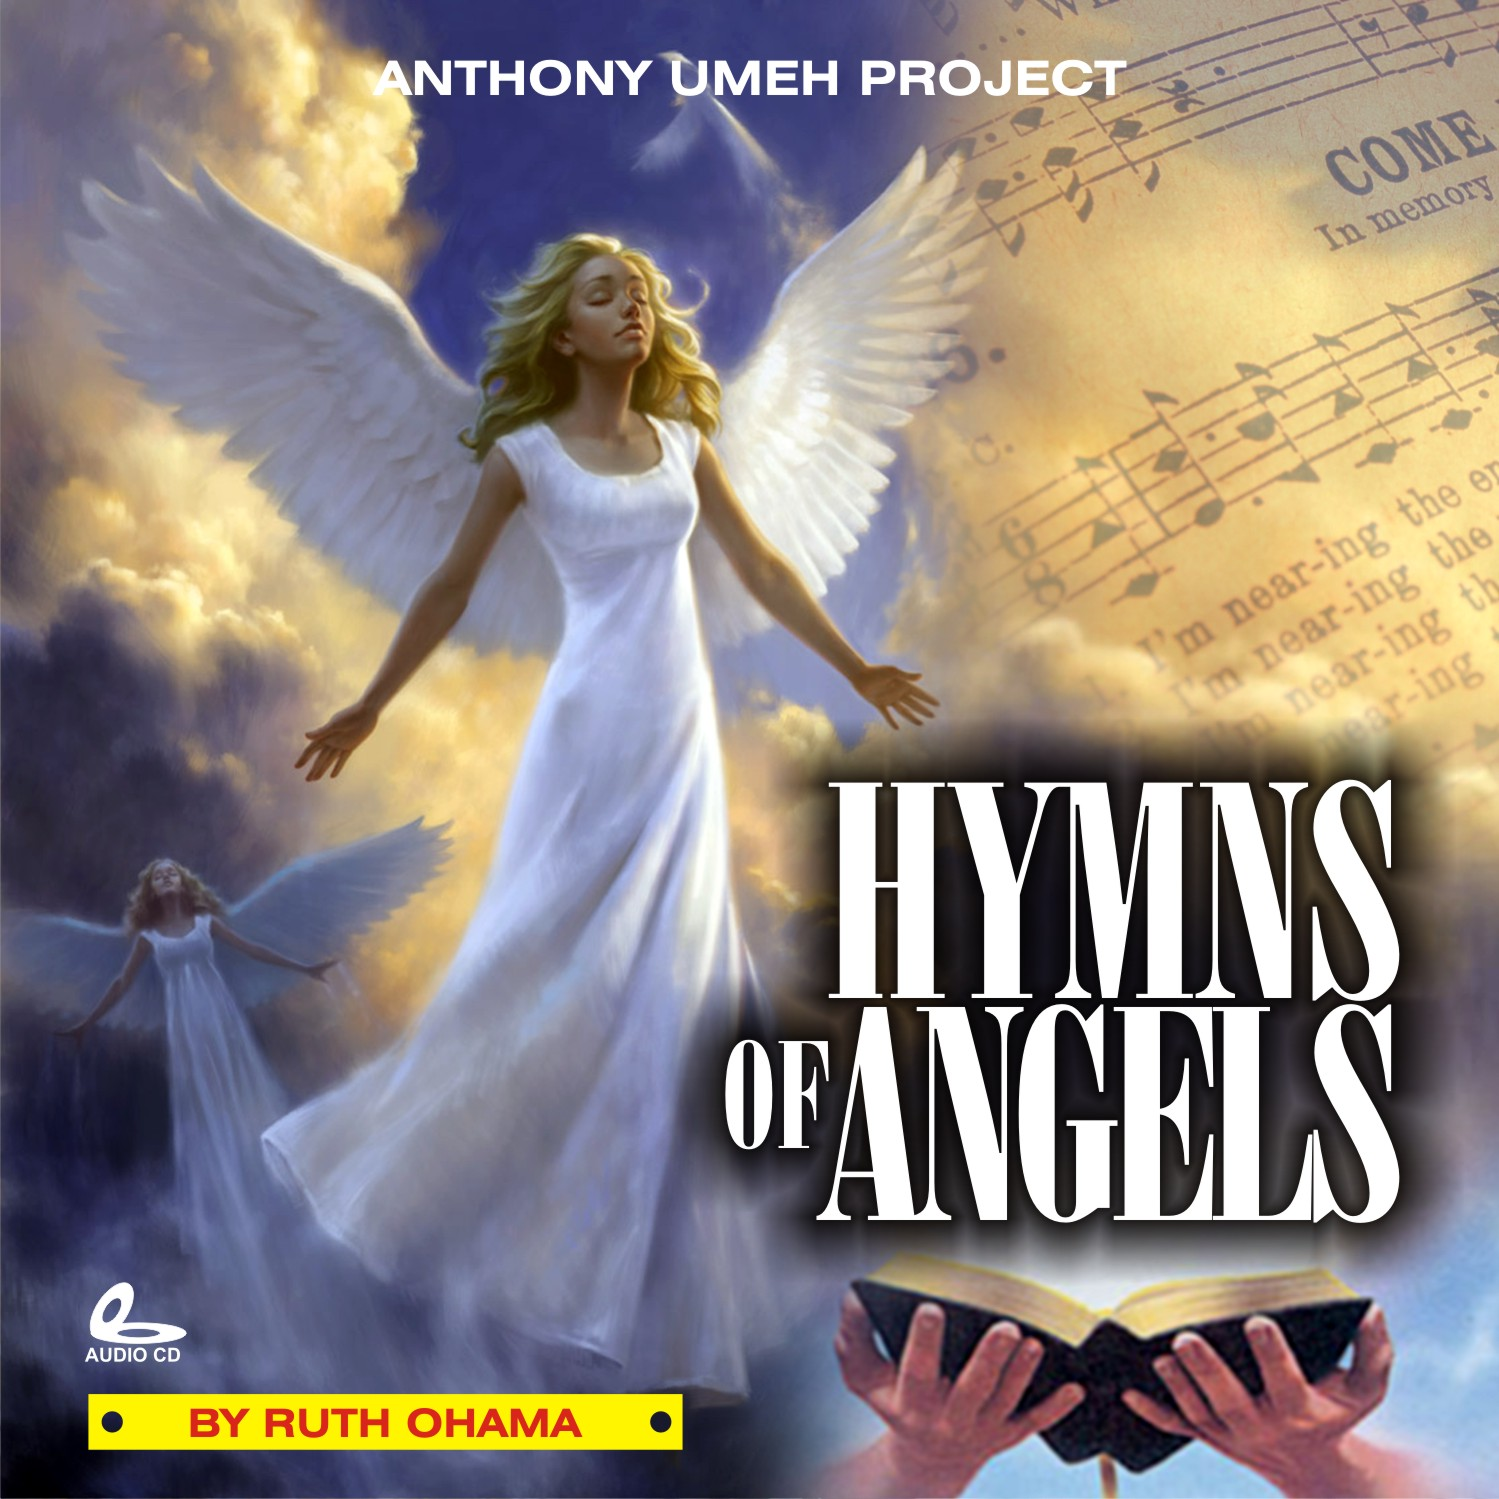 HYMNS OF ANGELS